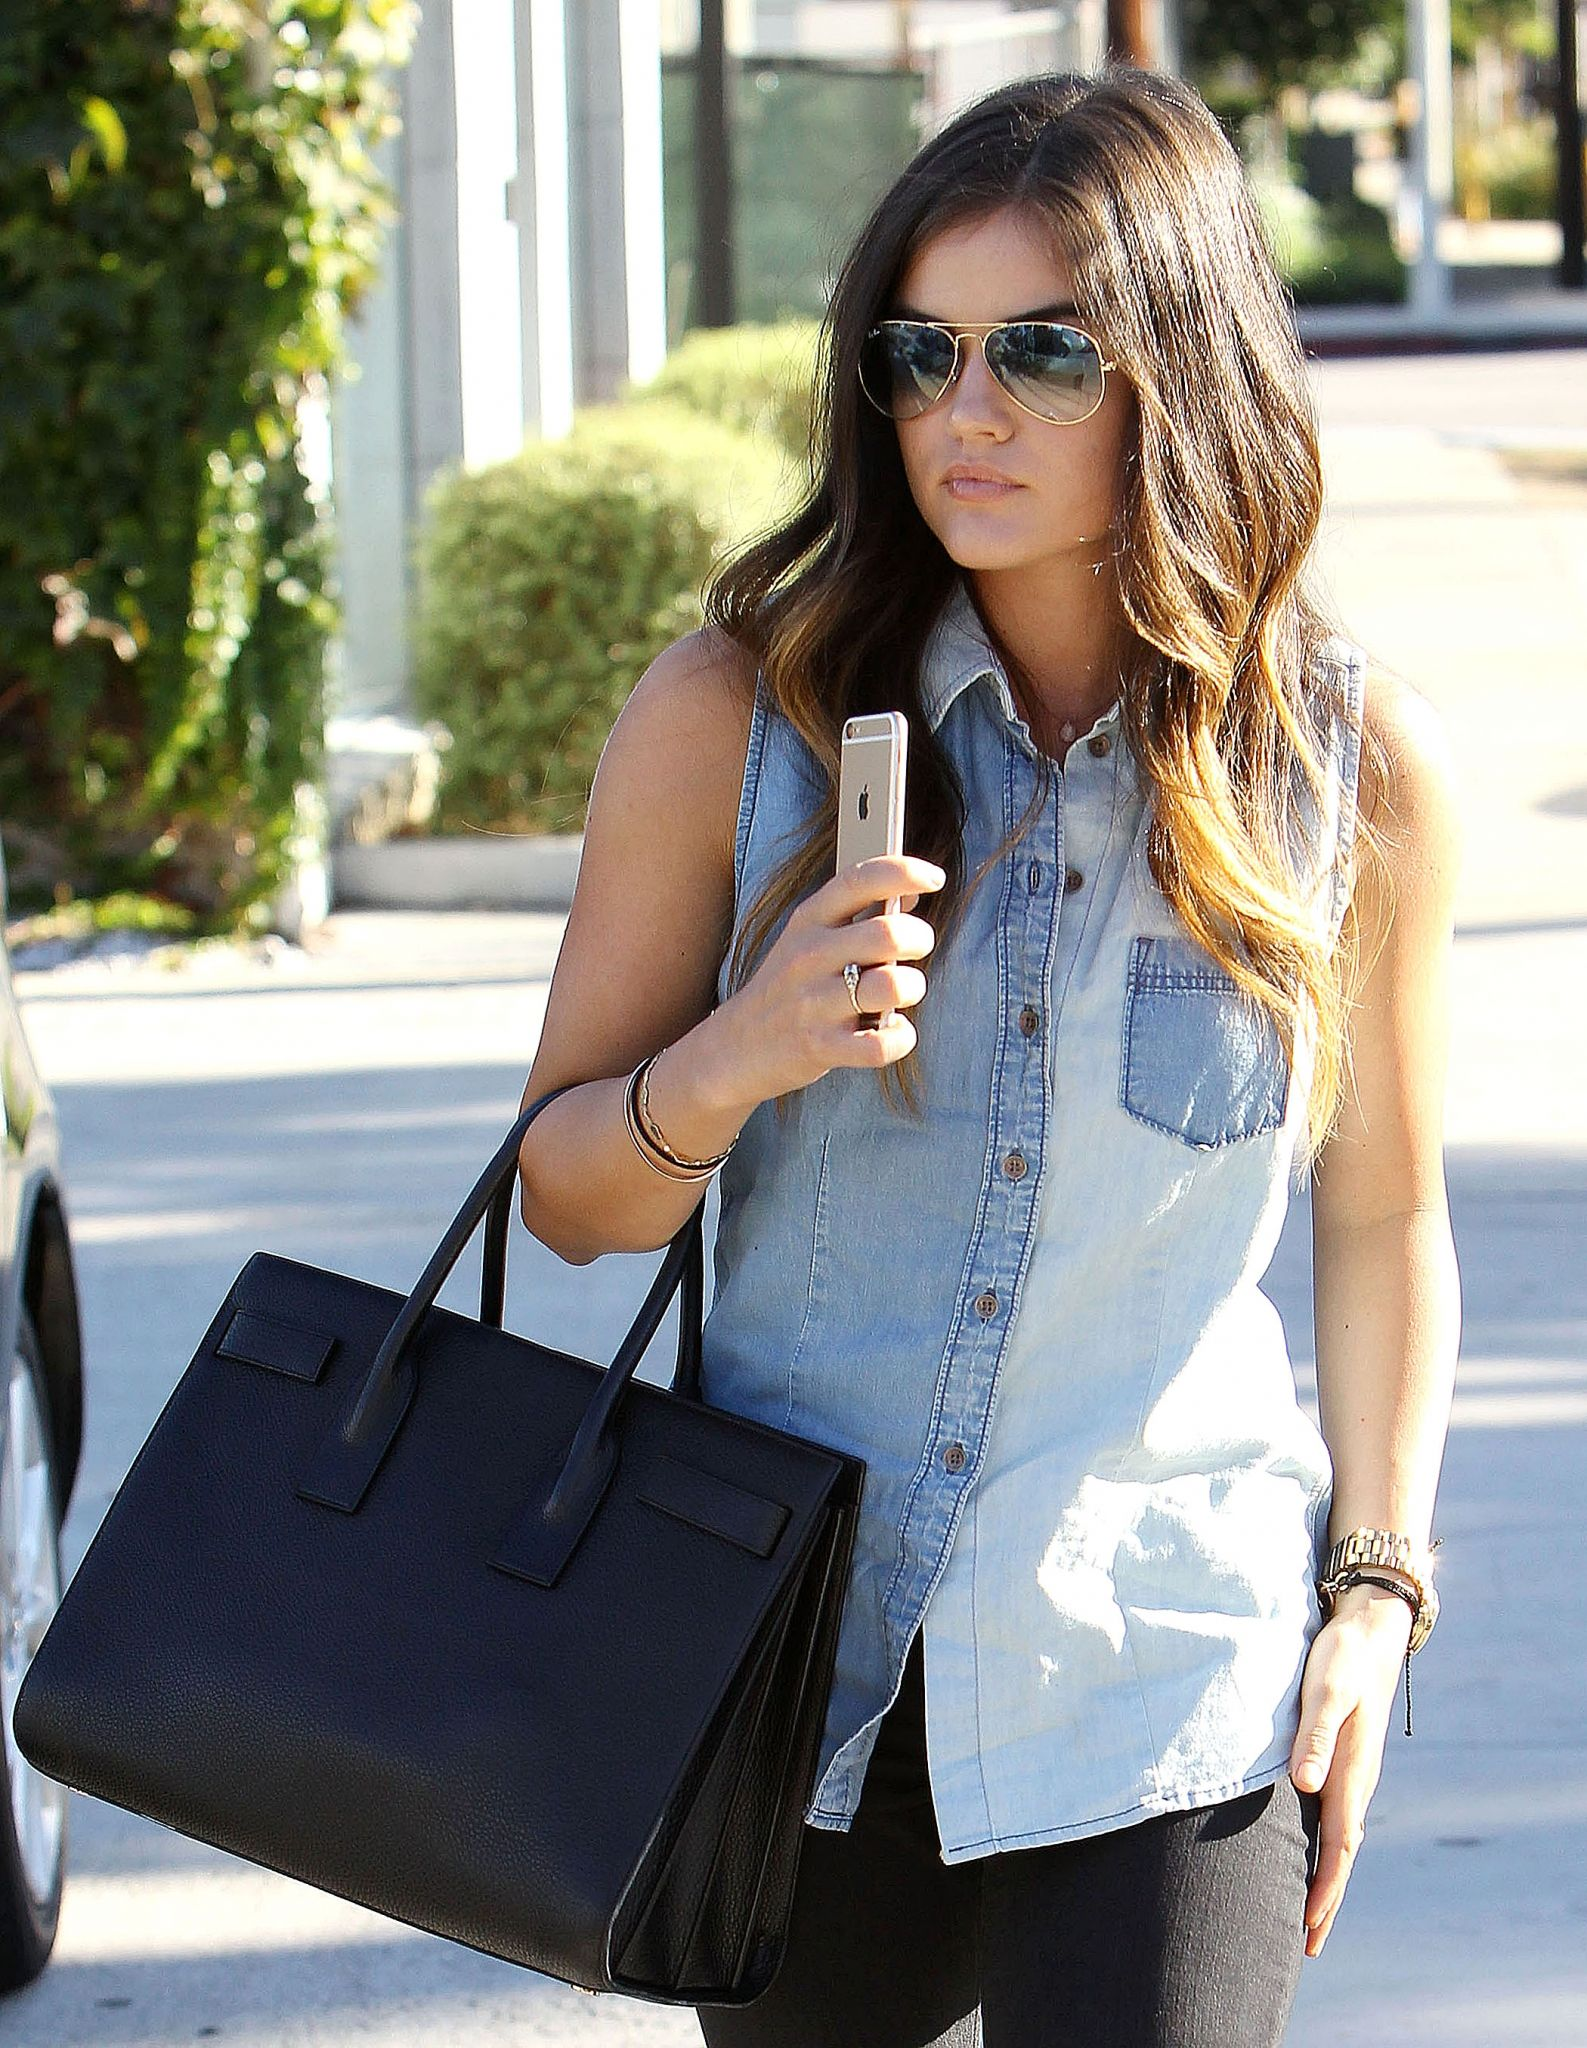 Lucy Hale heading to Andy Lecompte Salon in Beverly Hills - October 2, 2014